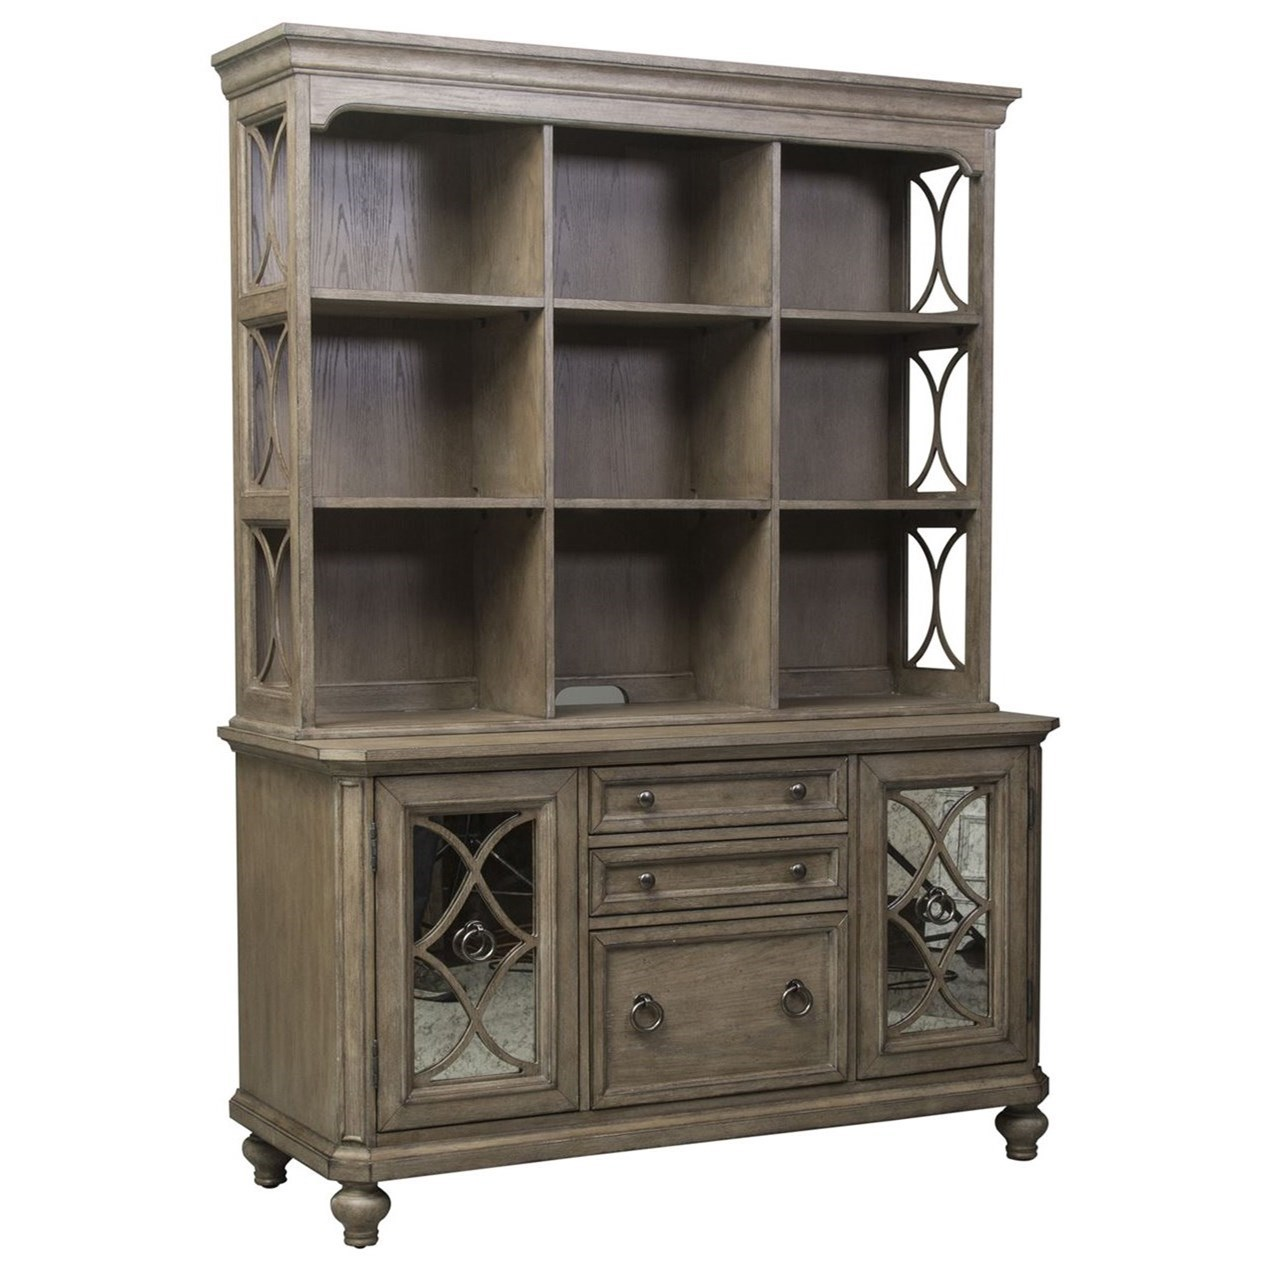 Simply Elegant Credenza and Hutch by Libby at Walker's Furniture